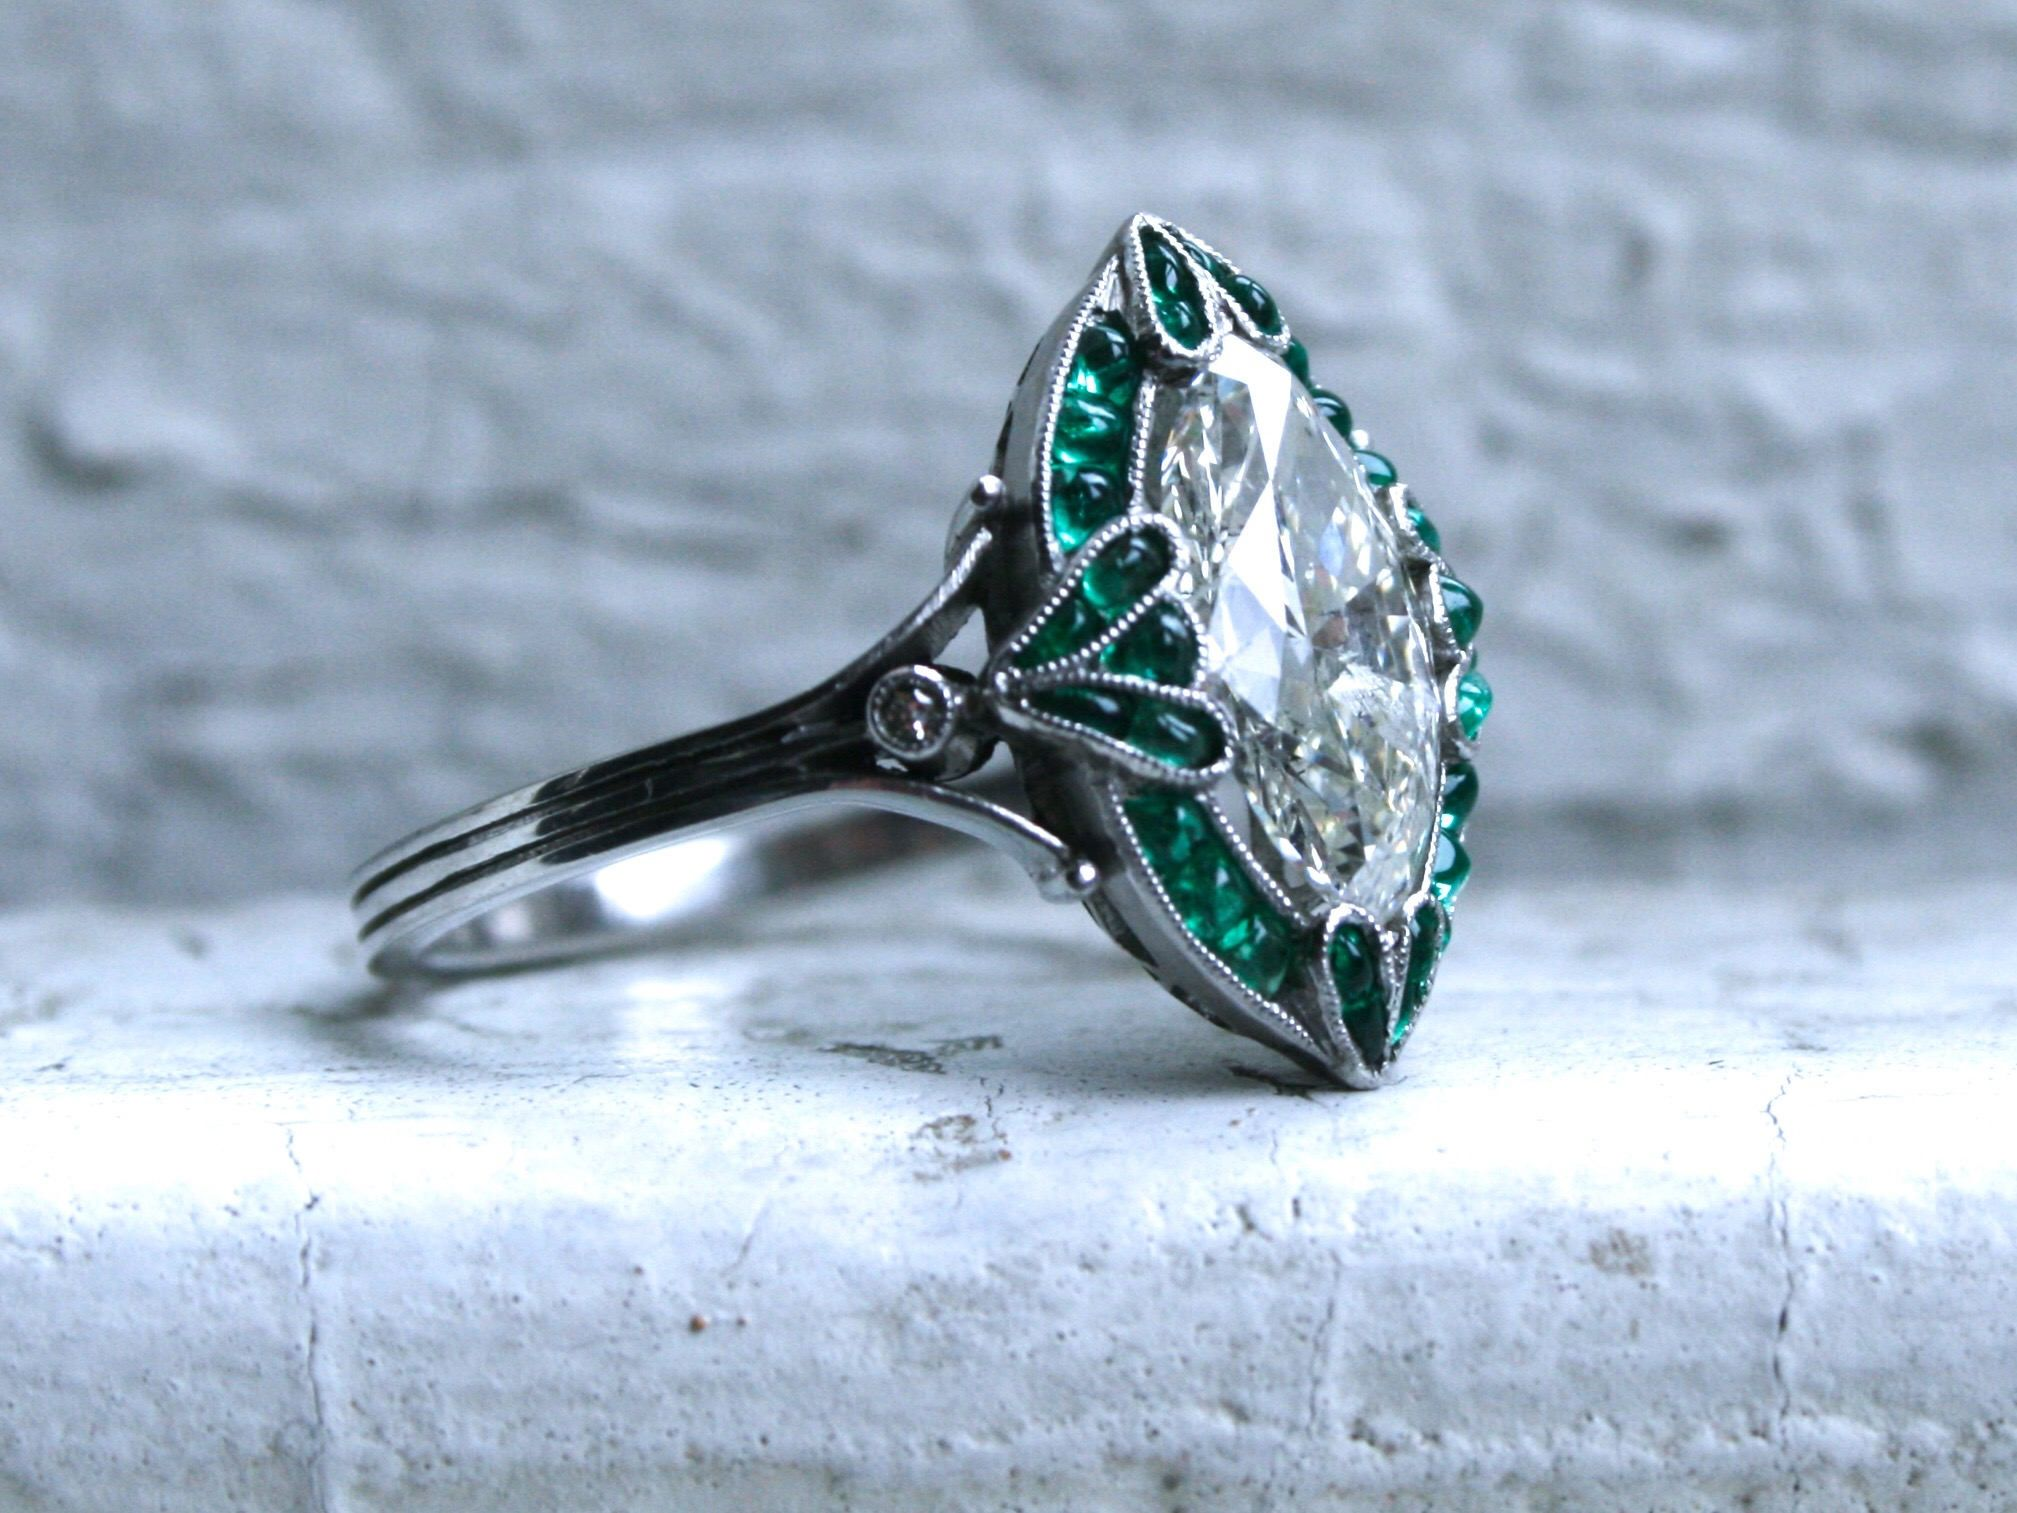 Vintage Art Deco Platinum Navette Emerald and Marquise Diamond Ring Engagement Ring - 2.82ct. by GoldAdore on Etsy https://www.etsy.com/listing/548188713/vintage-art-deco-platinum-navette